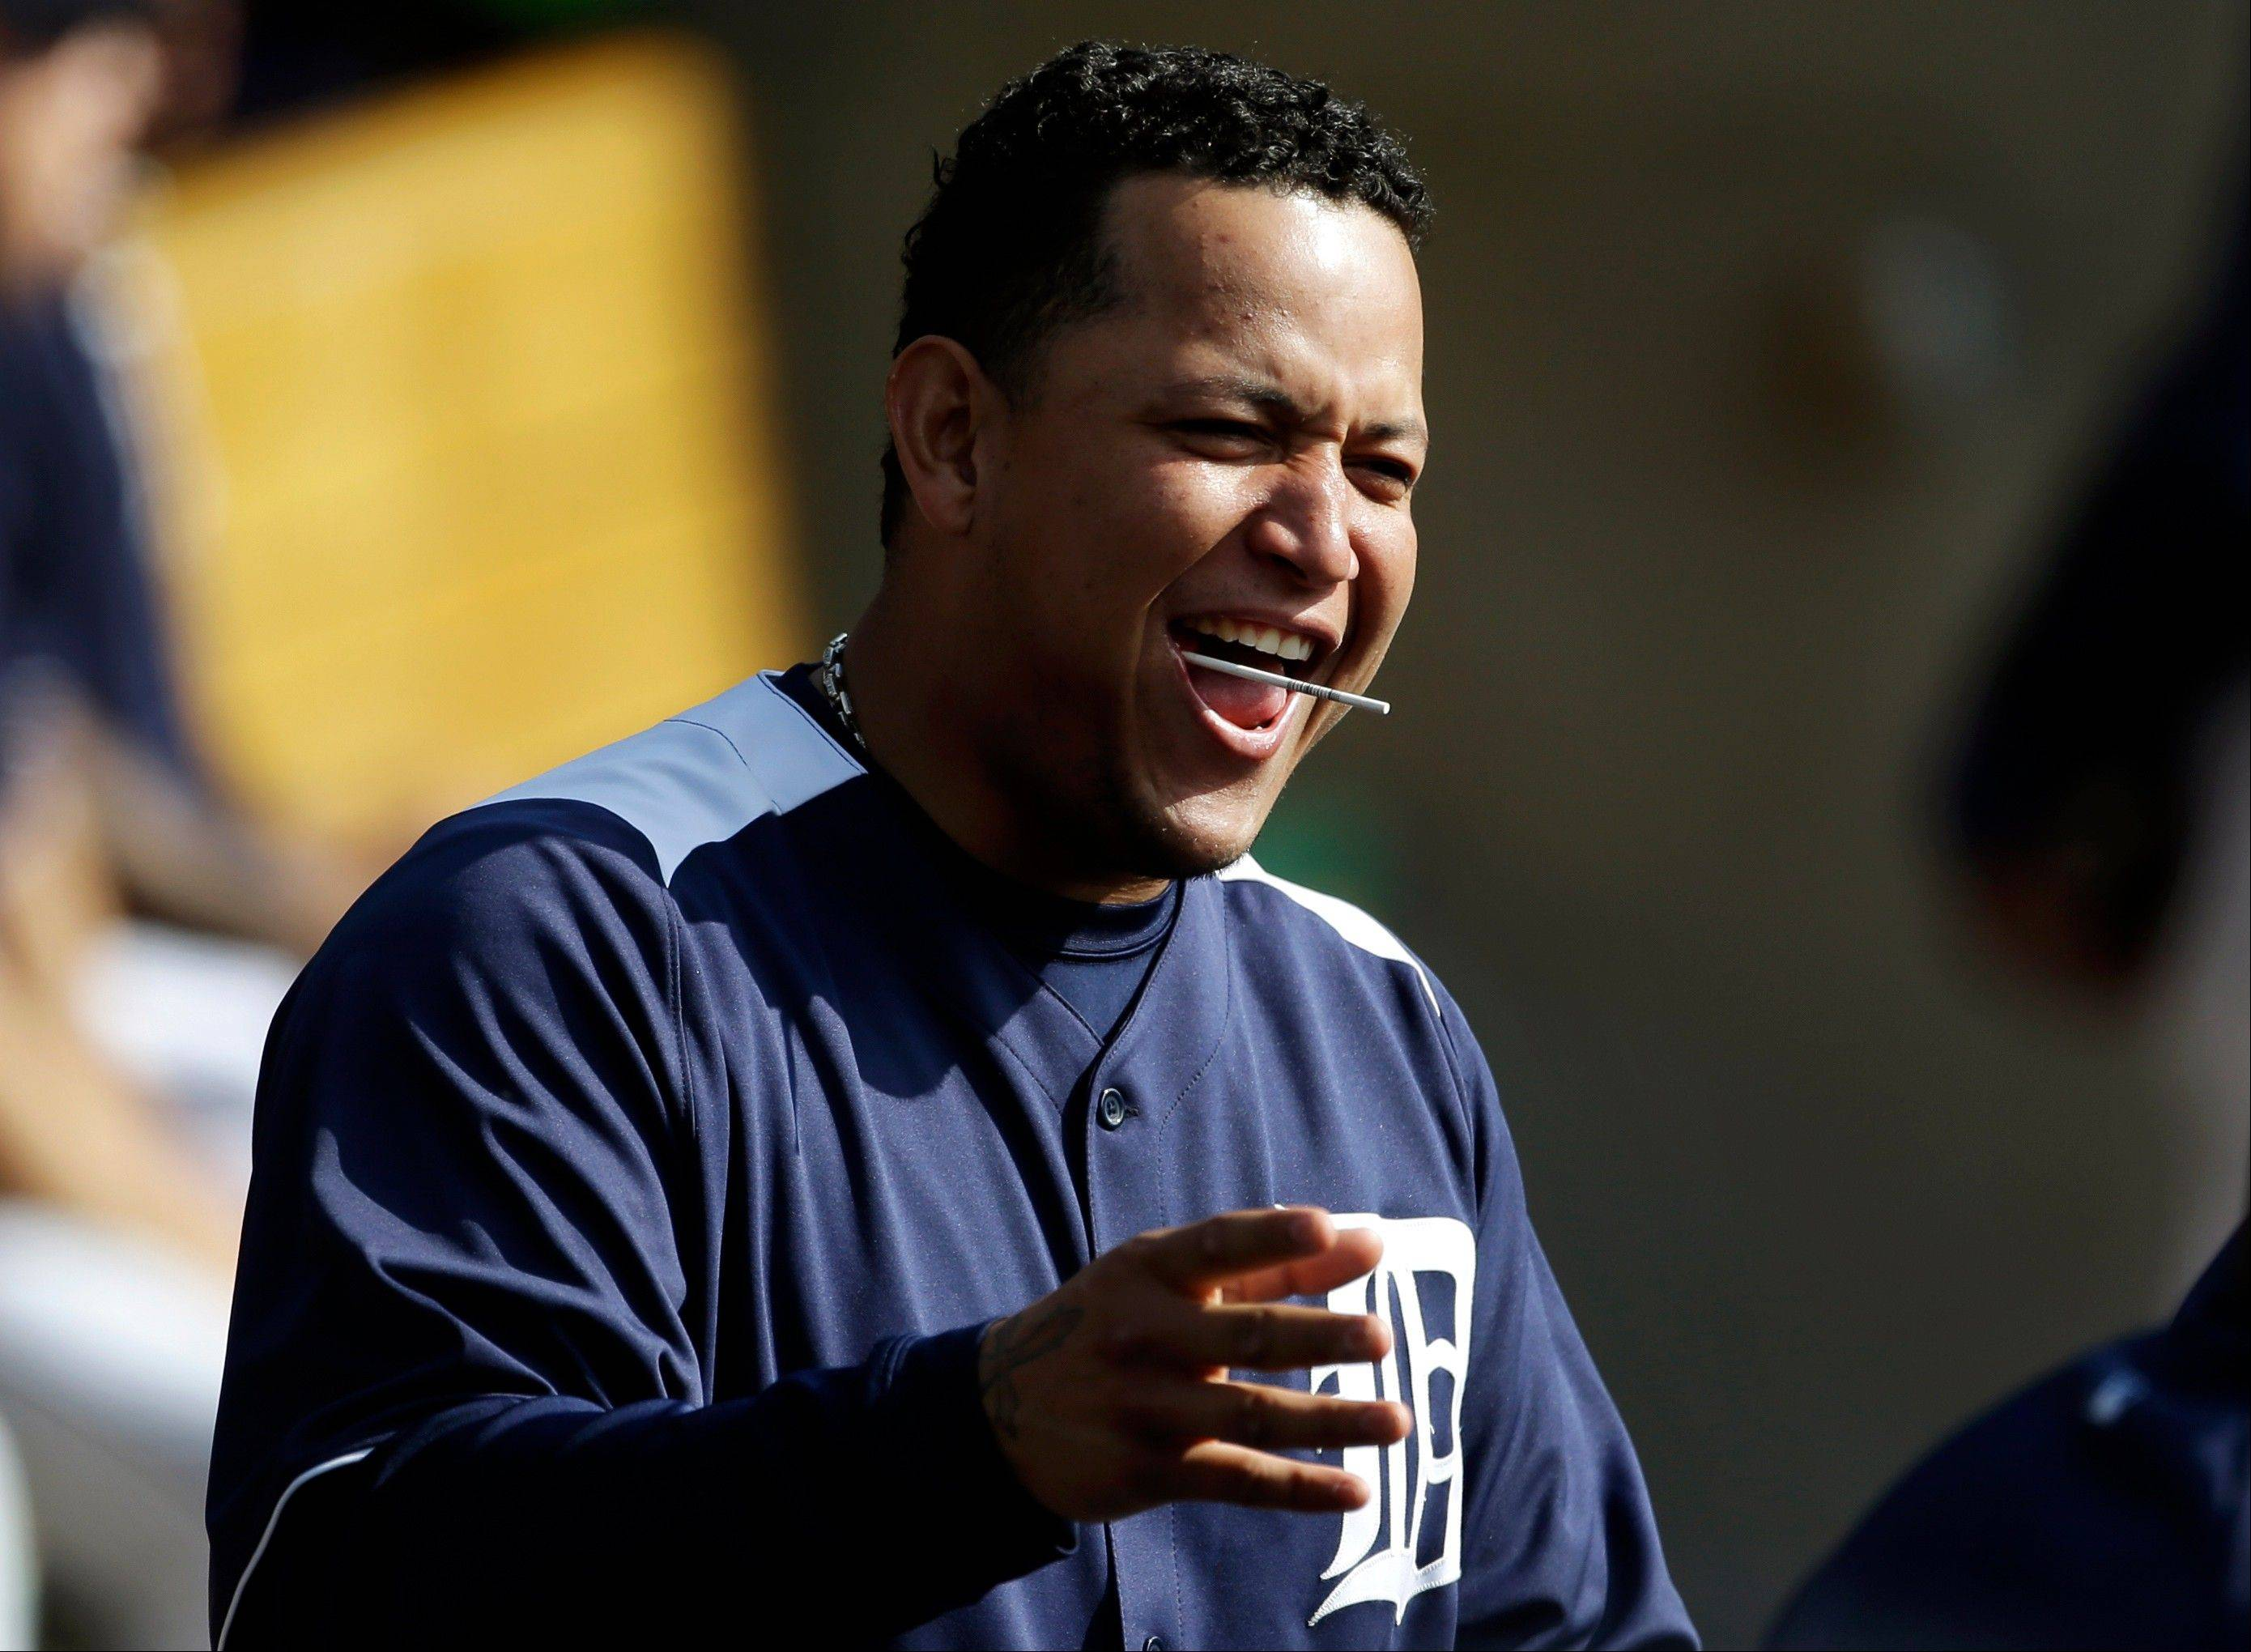 The Detroit Tigers� Miguel Cabrera laughs in the dugout during a workout Monday at Comerica Park in Detroit. Cabrera is one of 9 Venezuelans playing for the Tigers and Giants in the World Series.